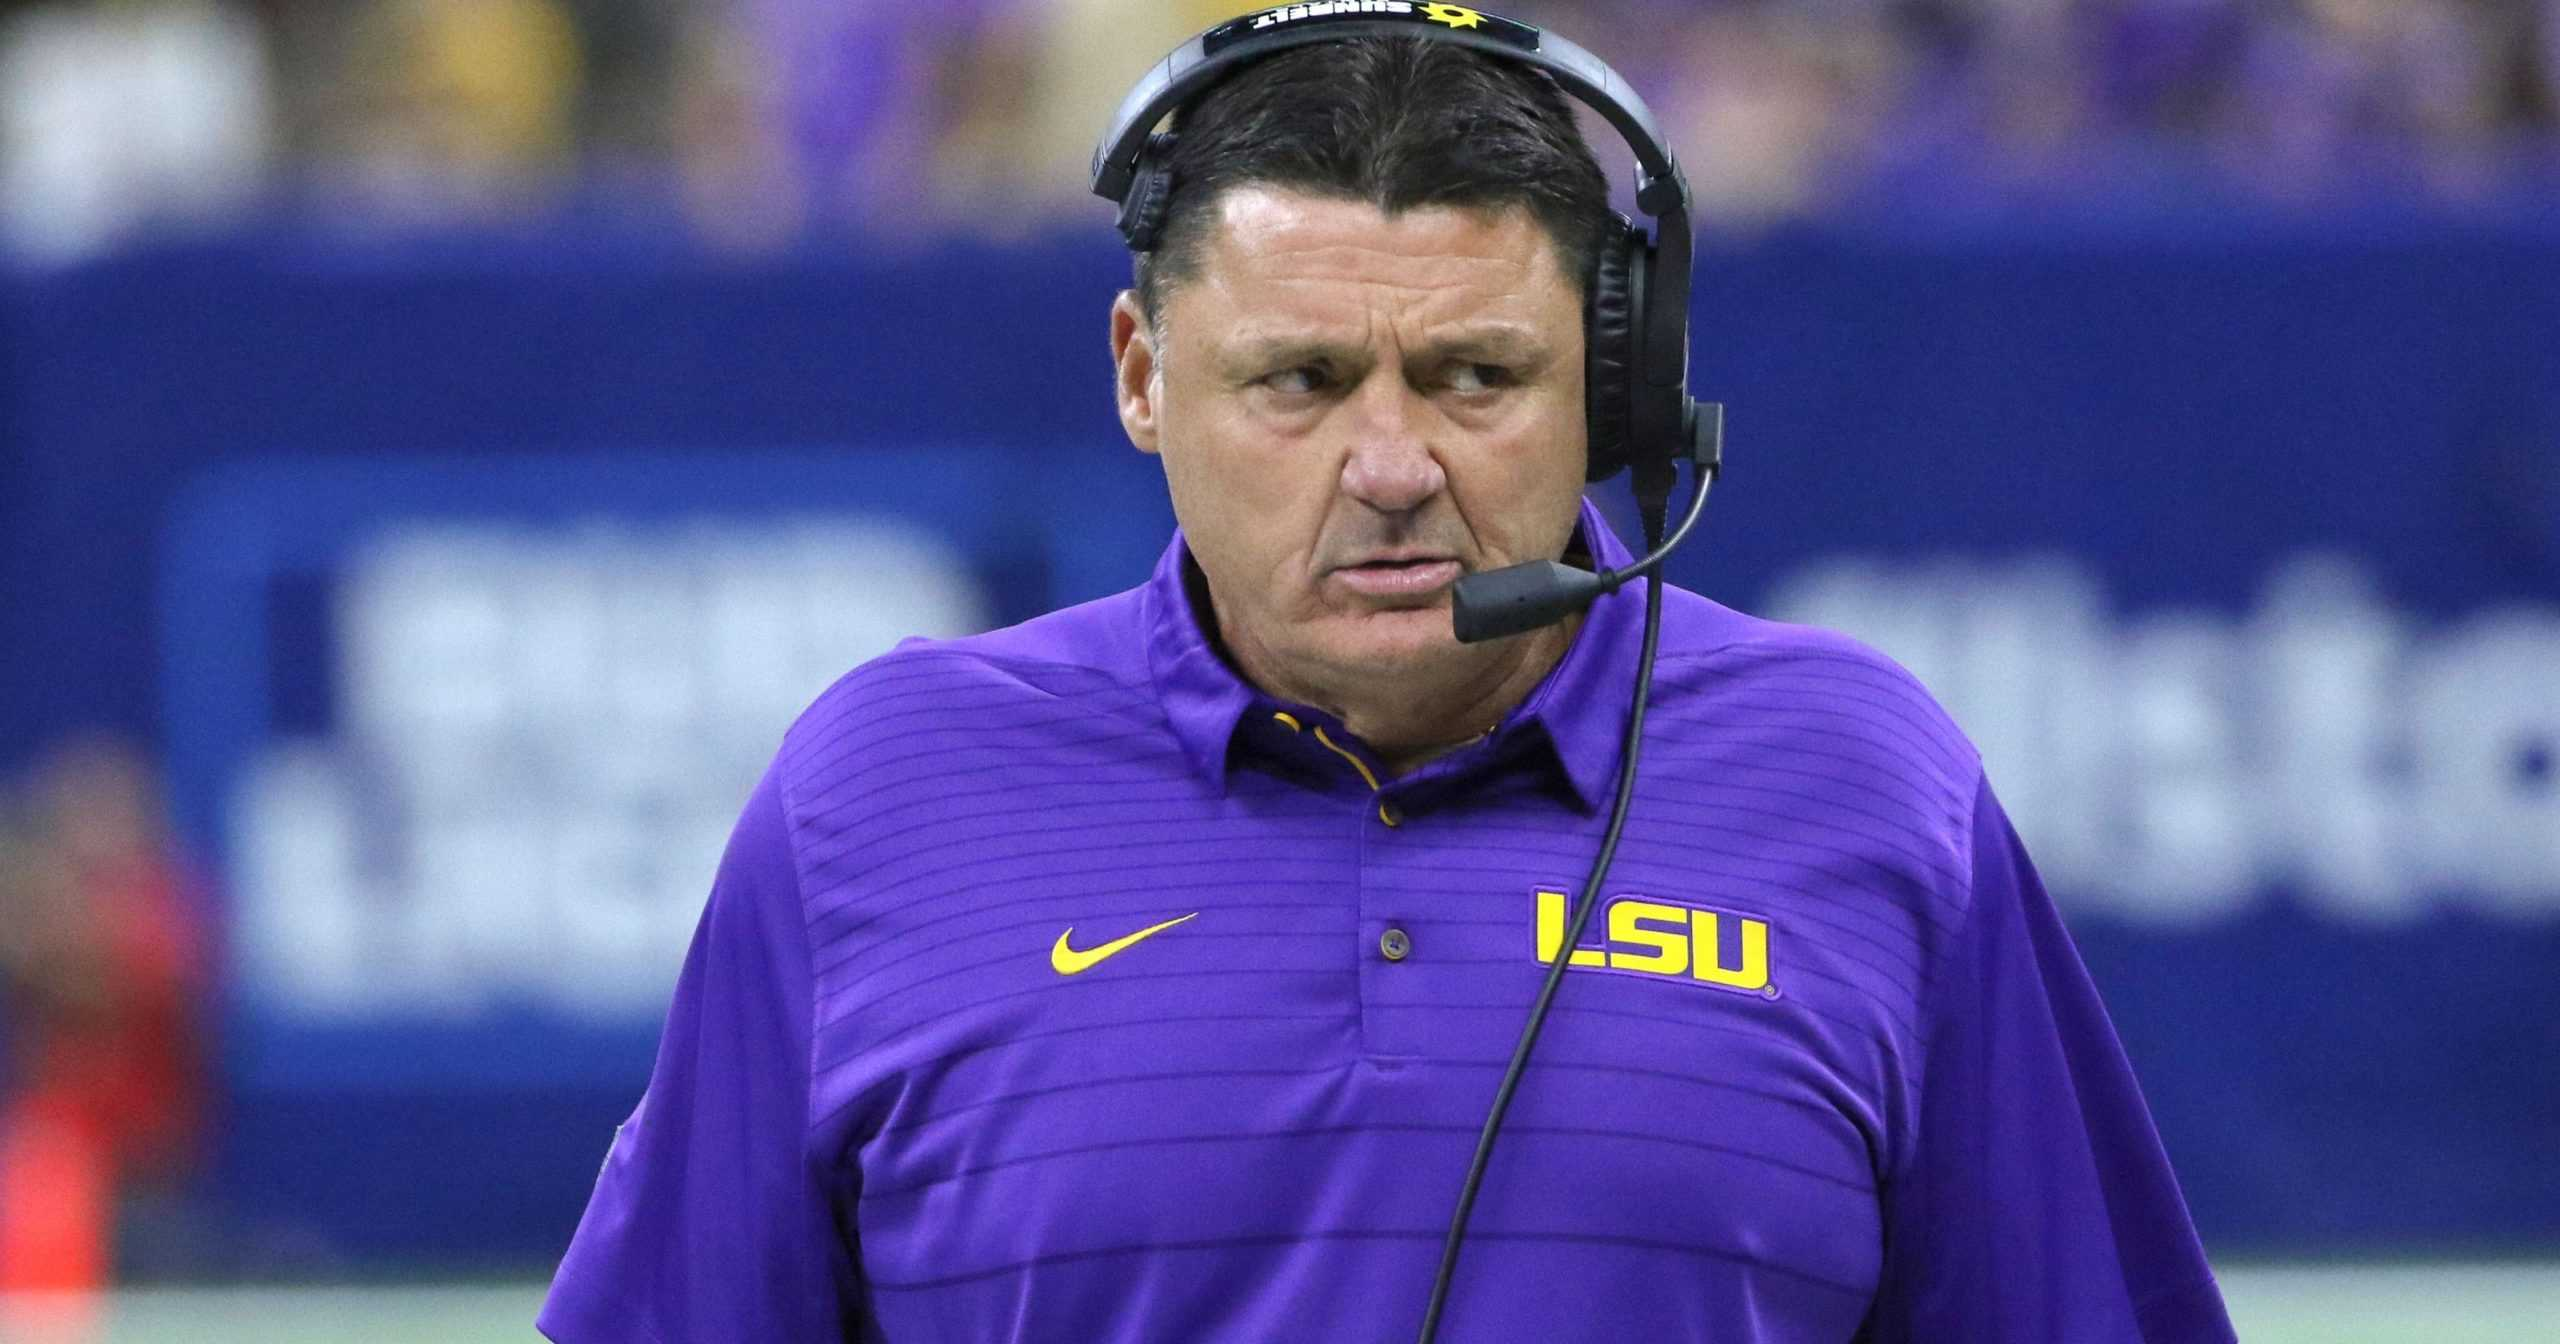 The Bayou Bombshell: Is Coach O Losing His grip?